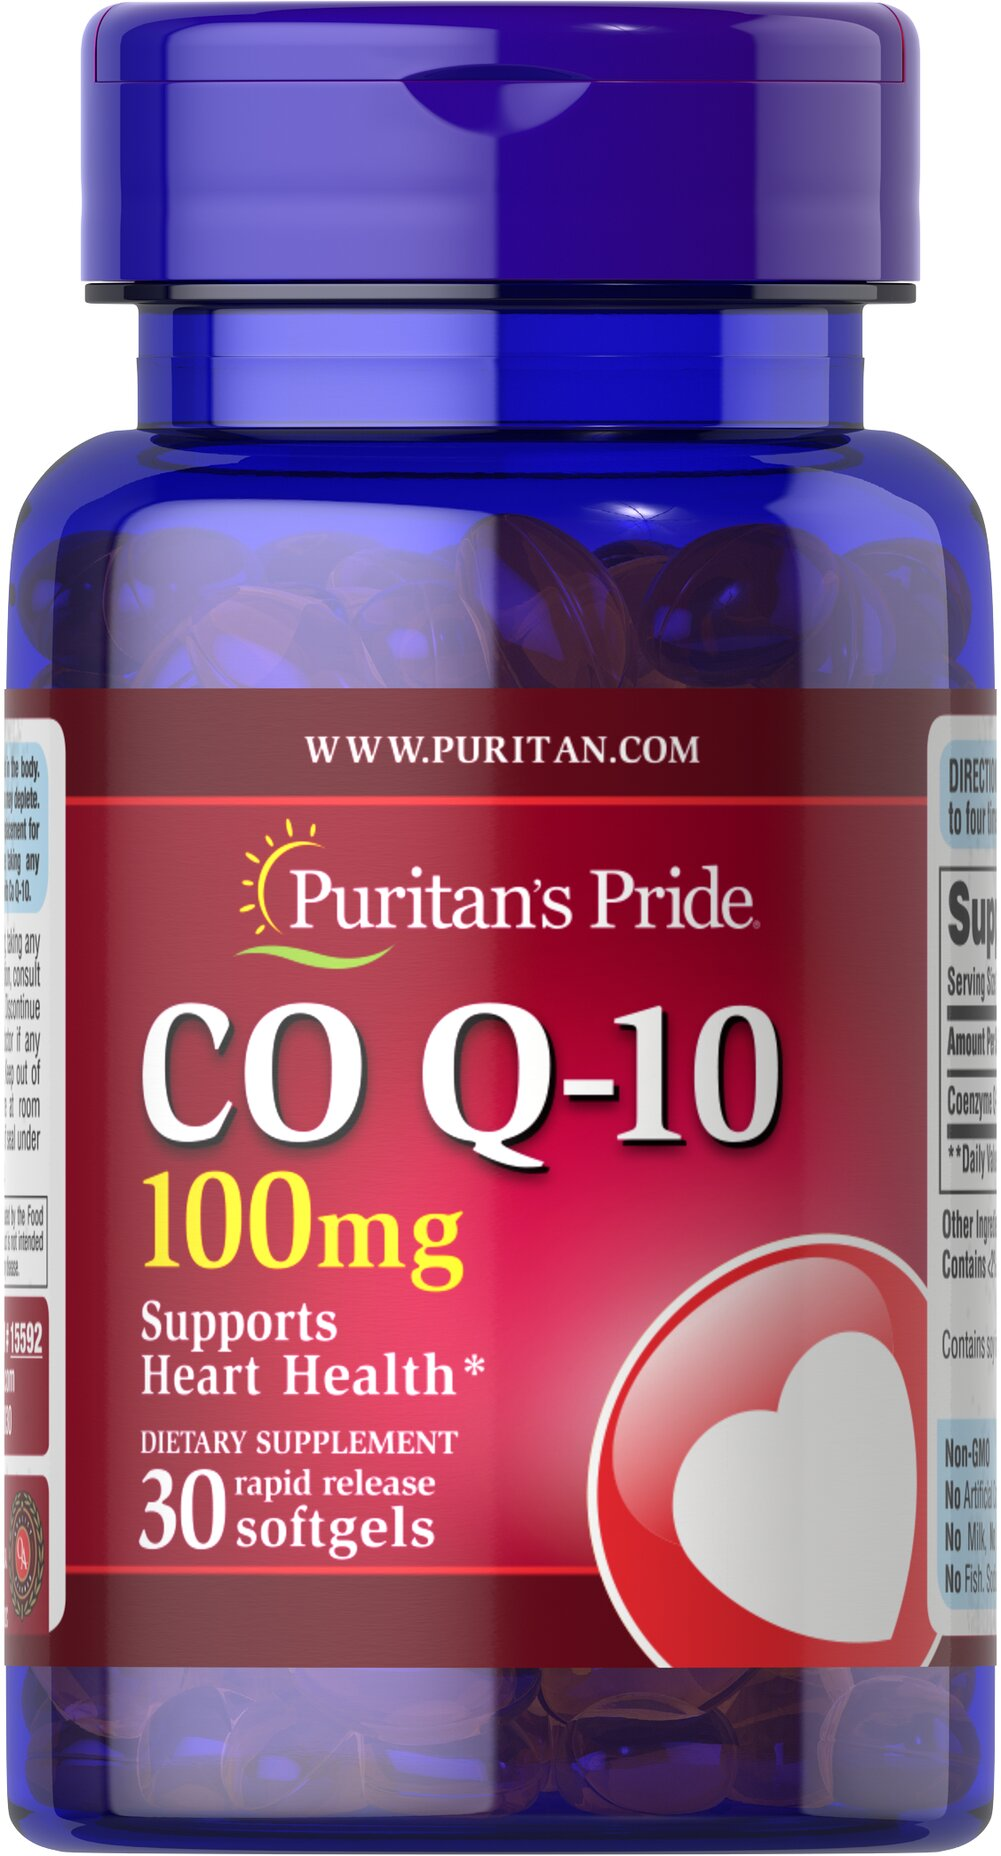 Co Q-10 100 mg <p></p>Made with a natural, highly bioavailable form of Co Q 10 — Q-Sorb.™ Important for Statin drug users++ — taking Q-Sorb™ Co Q 10 can help replenish what Statin drugs can deplete. Coenzyme Q-10 provides powerful antioxidant support.** Good oral health is linked to cardiovascular health; Coenzyme Q10 supports both!** Hermetically sealed in easy to swallow rapid-release softgels for superior absorption. <br /><br />++Note: Statin medications can reduce Co